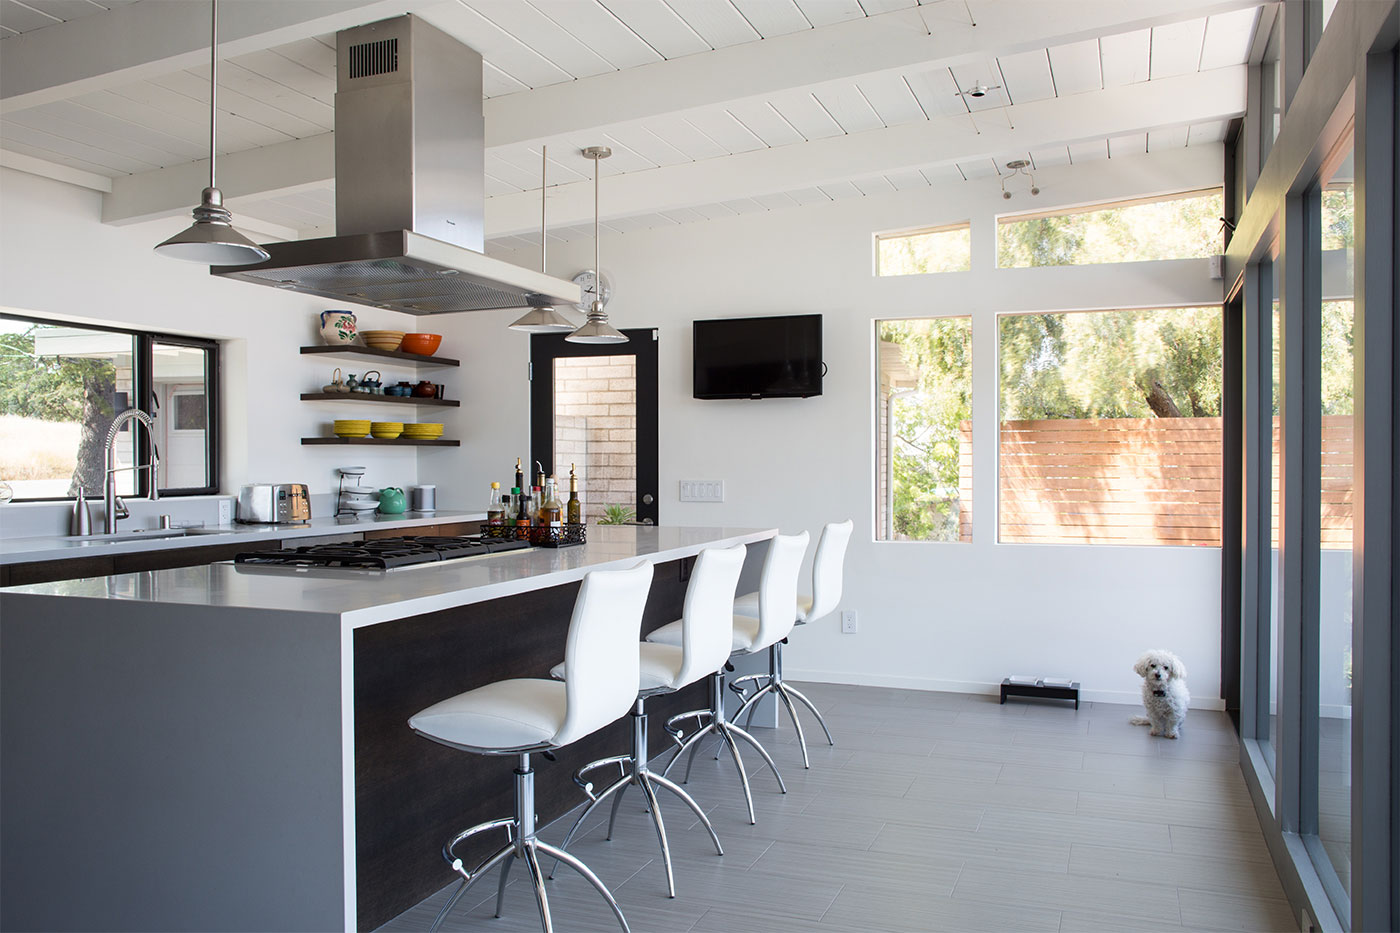 20 charming midcentury kitchens, ranked from virtually untouched ... - ^